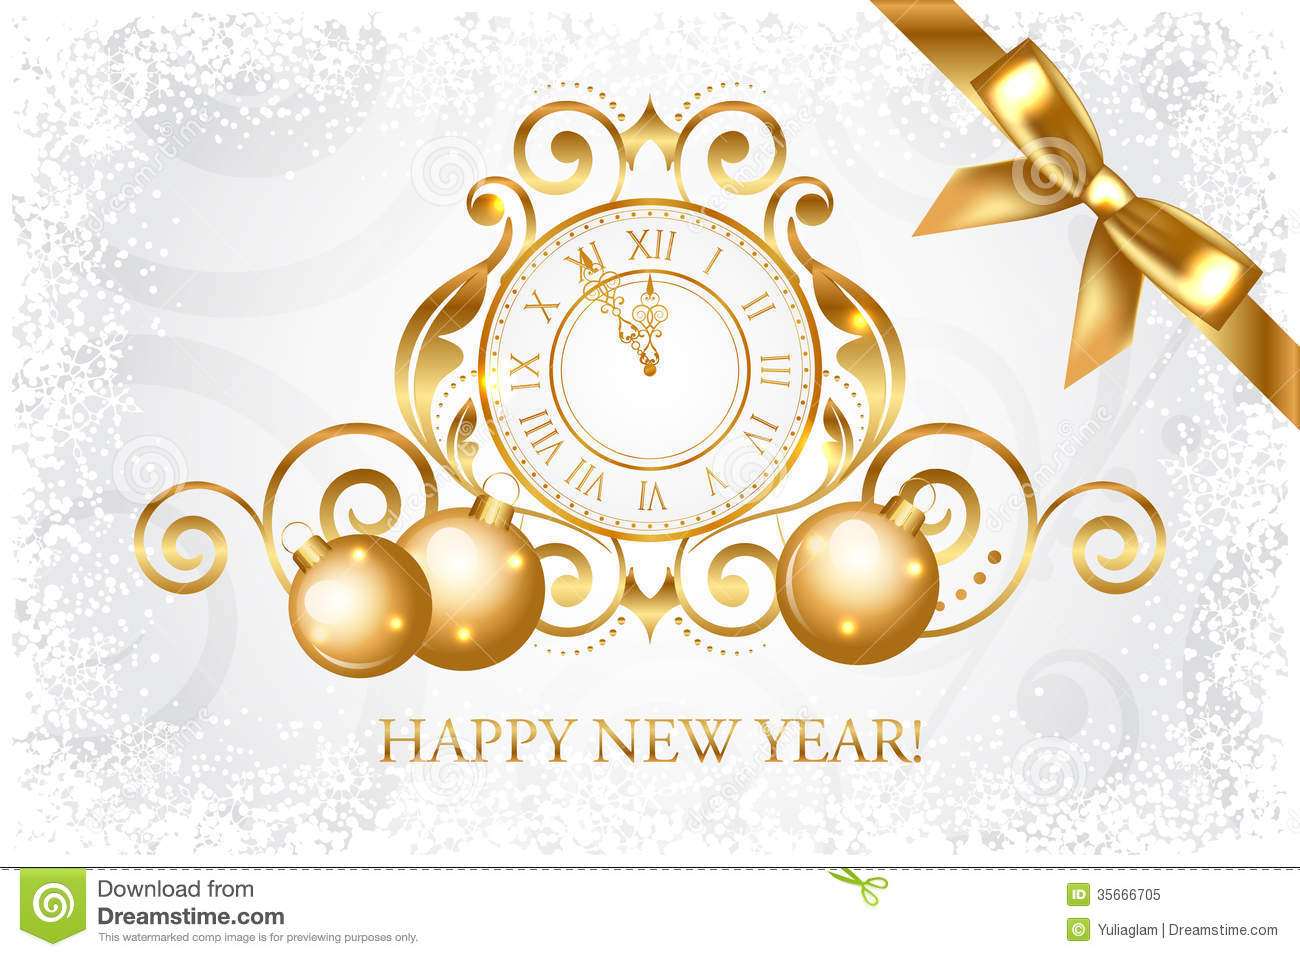 Silver & Gold Happy New Year Card Stock Vector - Illustration of ...